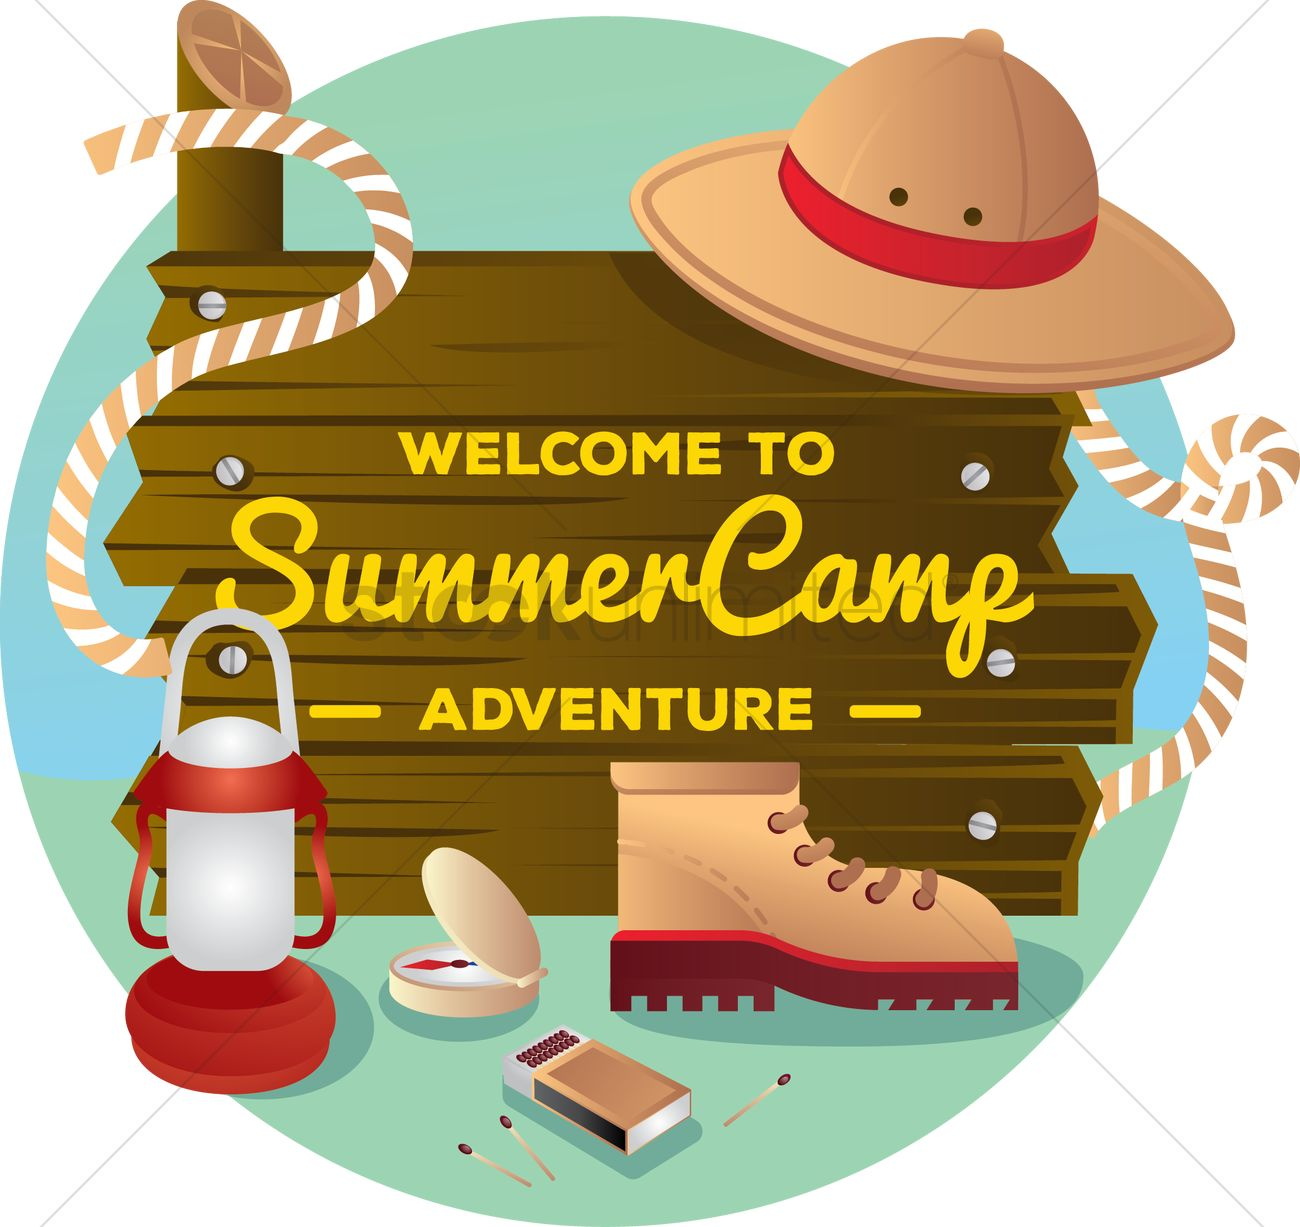 Summer Camps: Welcome To Summer Camp Adventure Vector Image